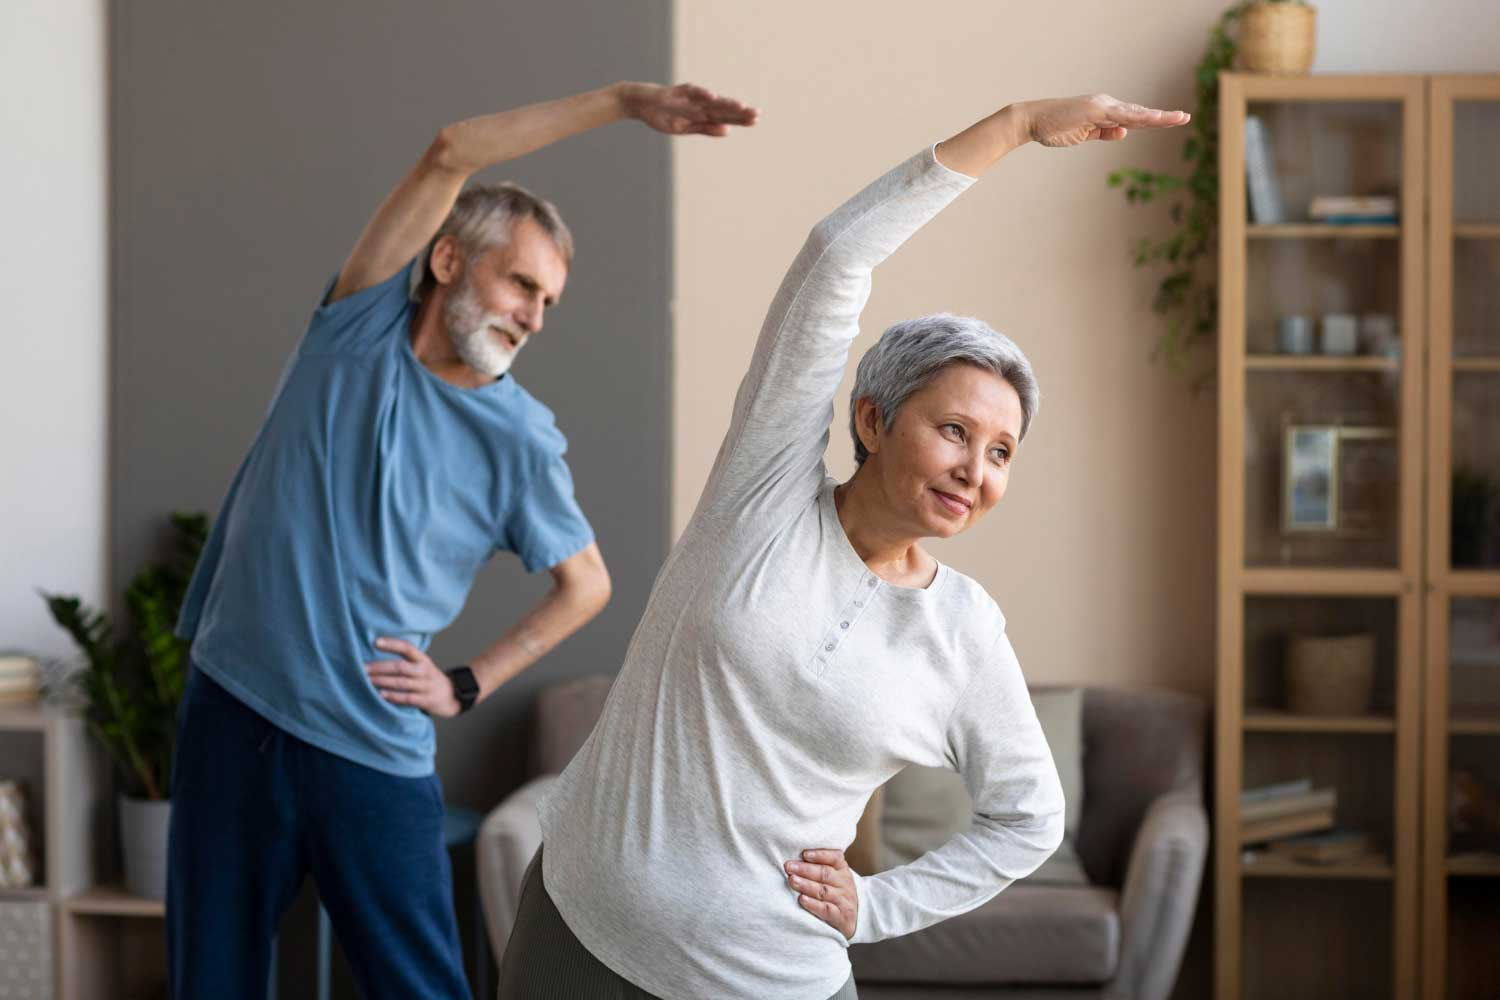 Exercise Important for Health